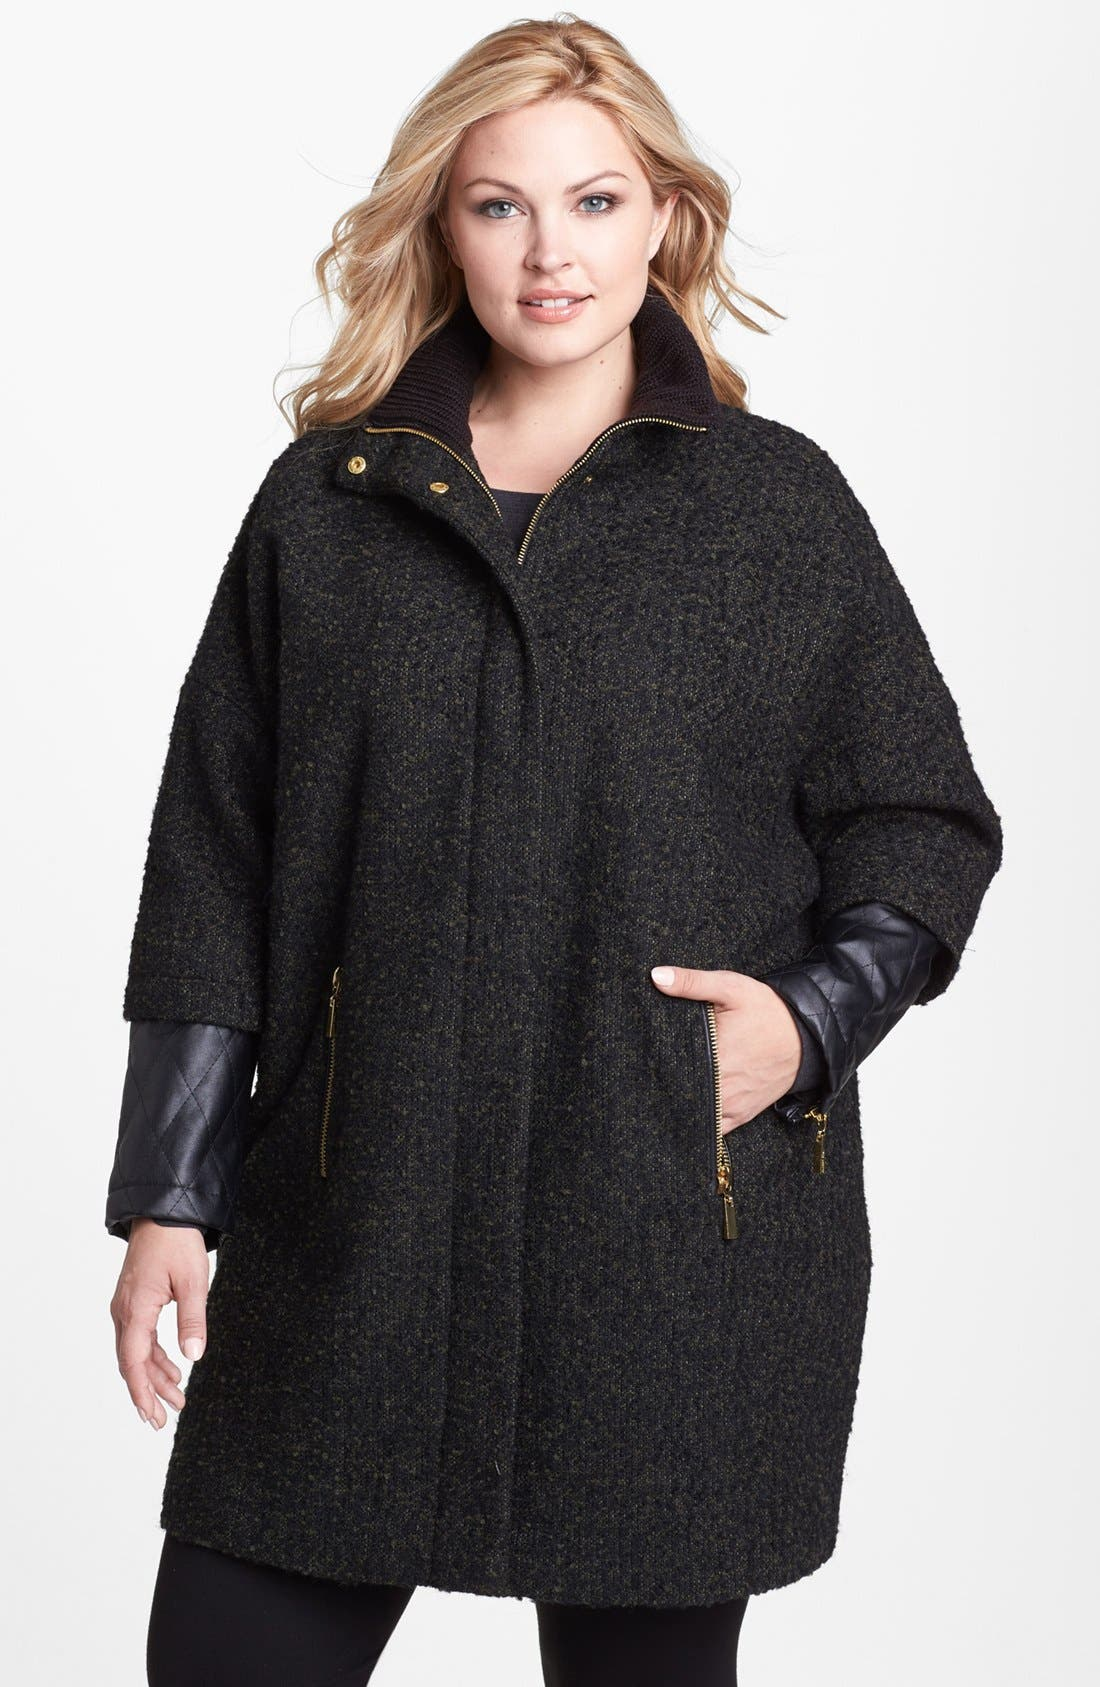 Main Image - Vince Camuto Faux Leather Sleeve Bouclé Tweed Coat (Plus Size)